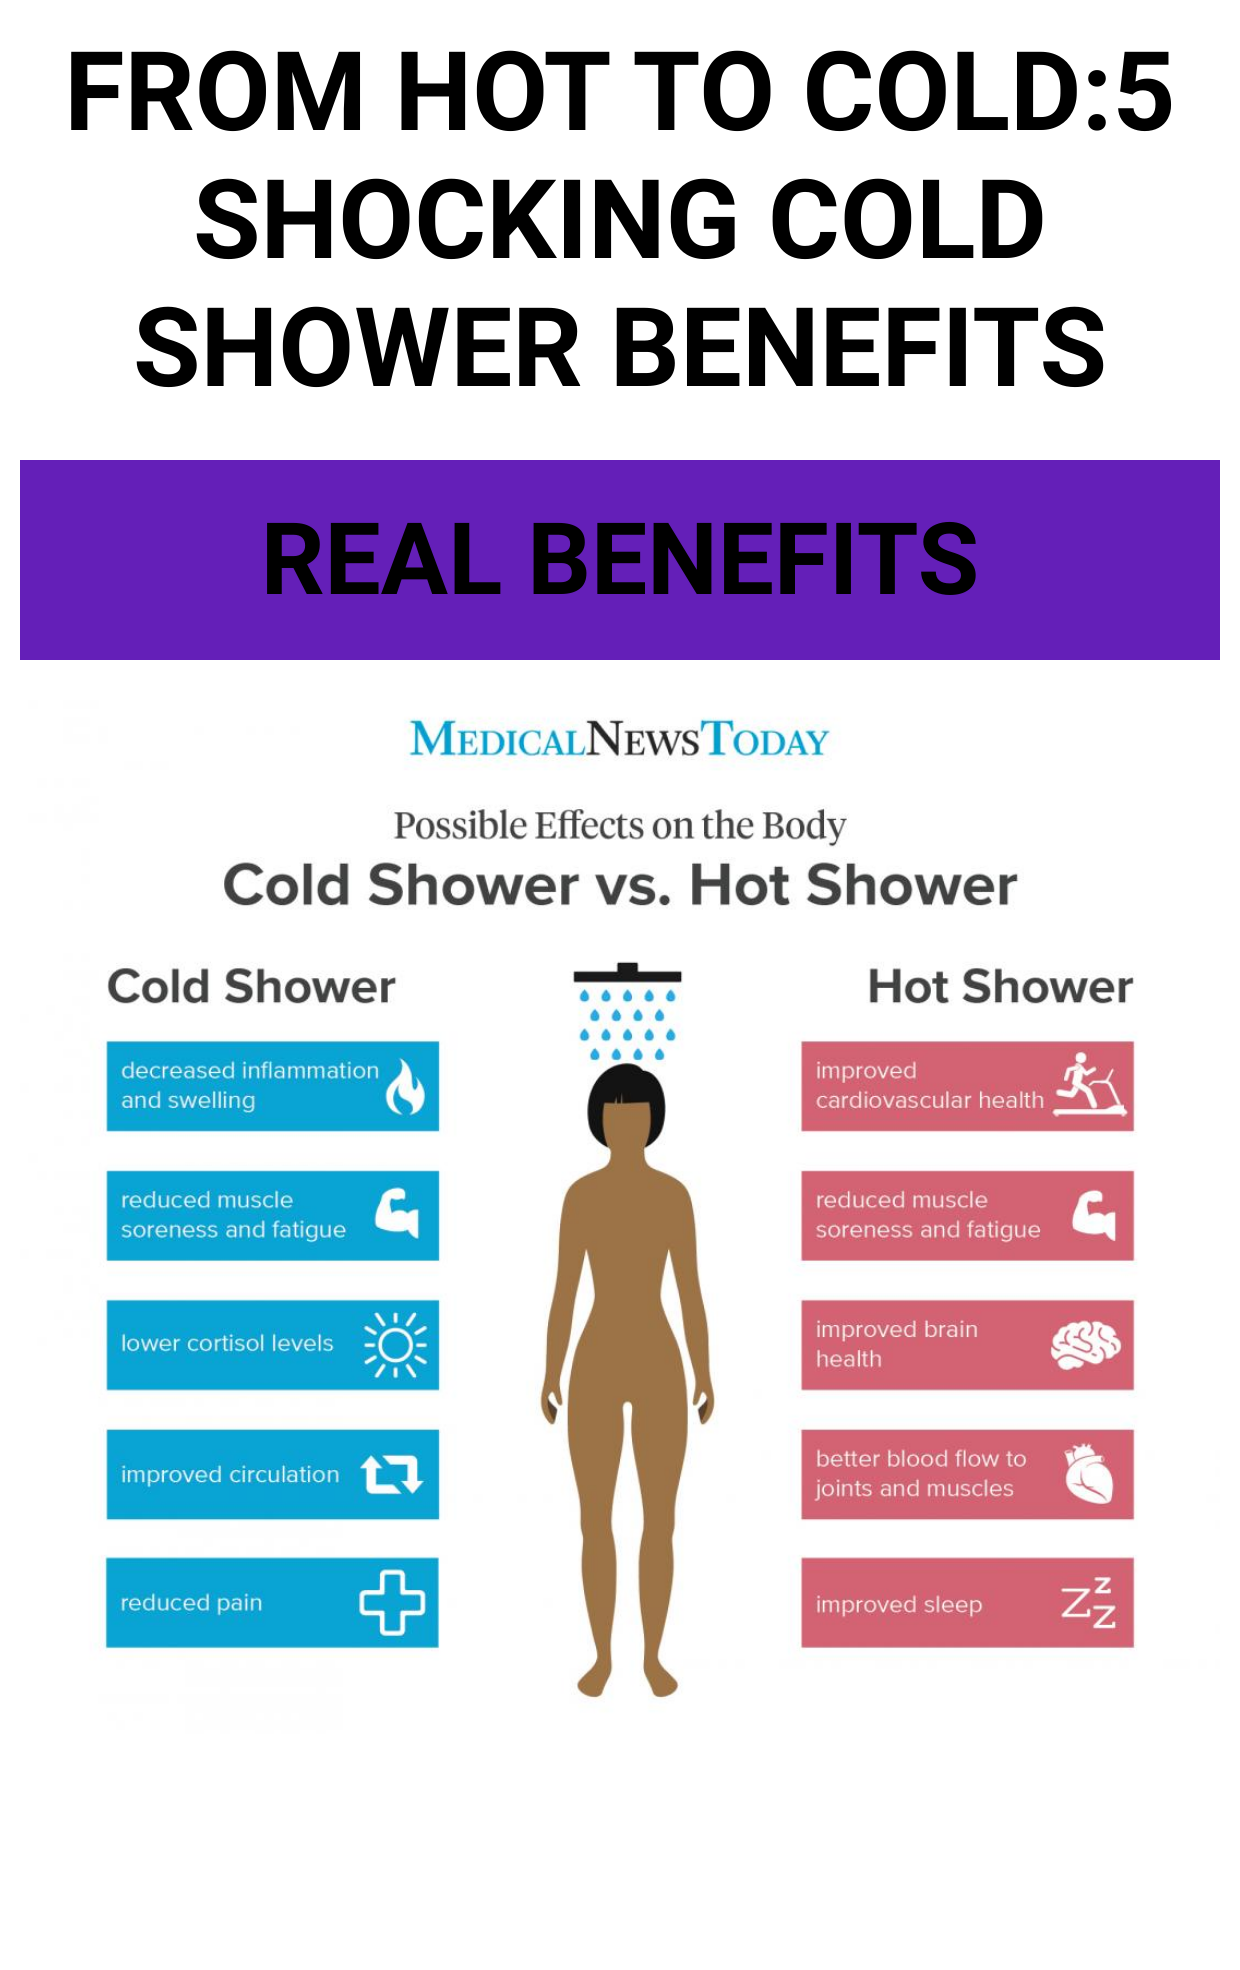 From Hot to Cold:5 Shocking cold shower benefits